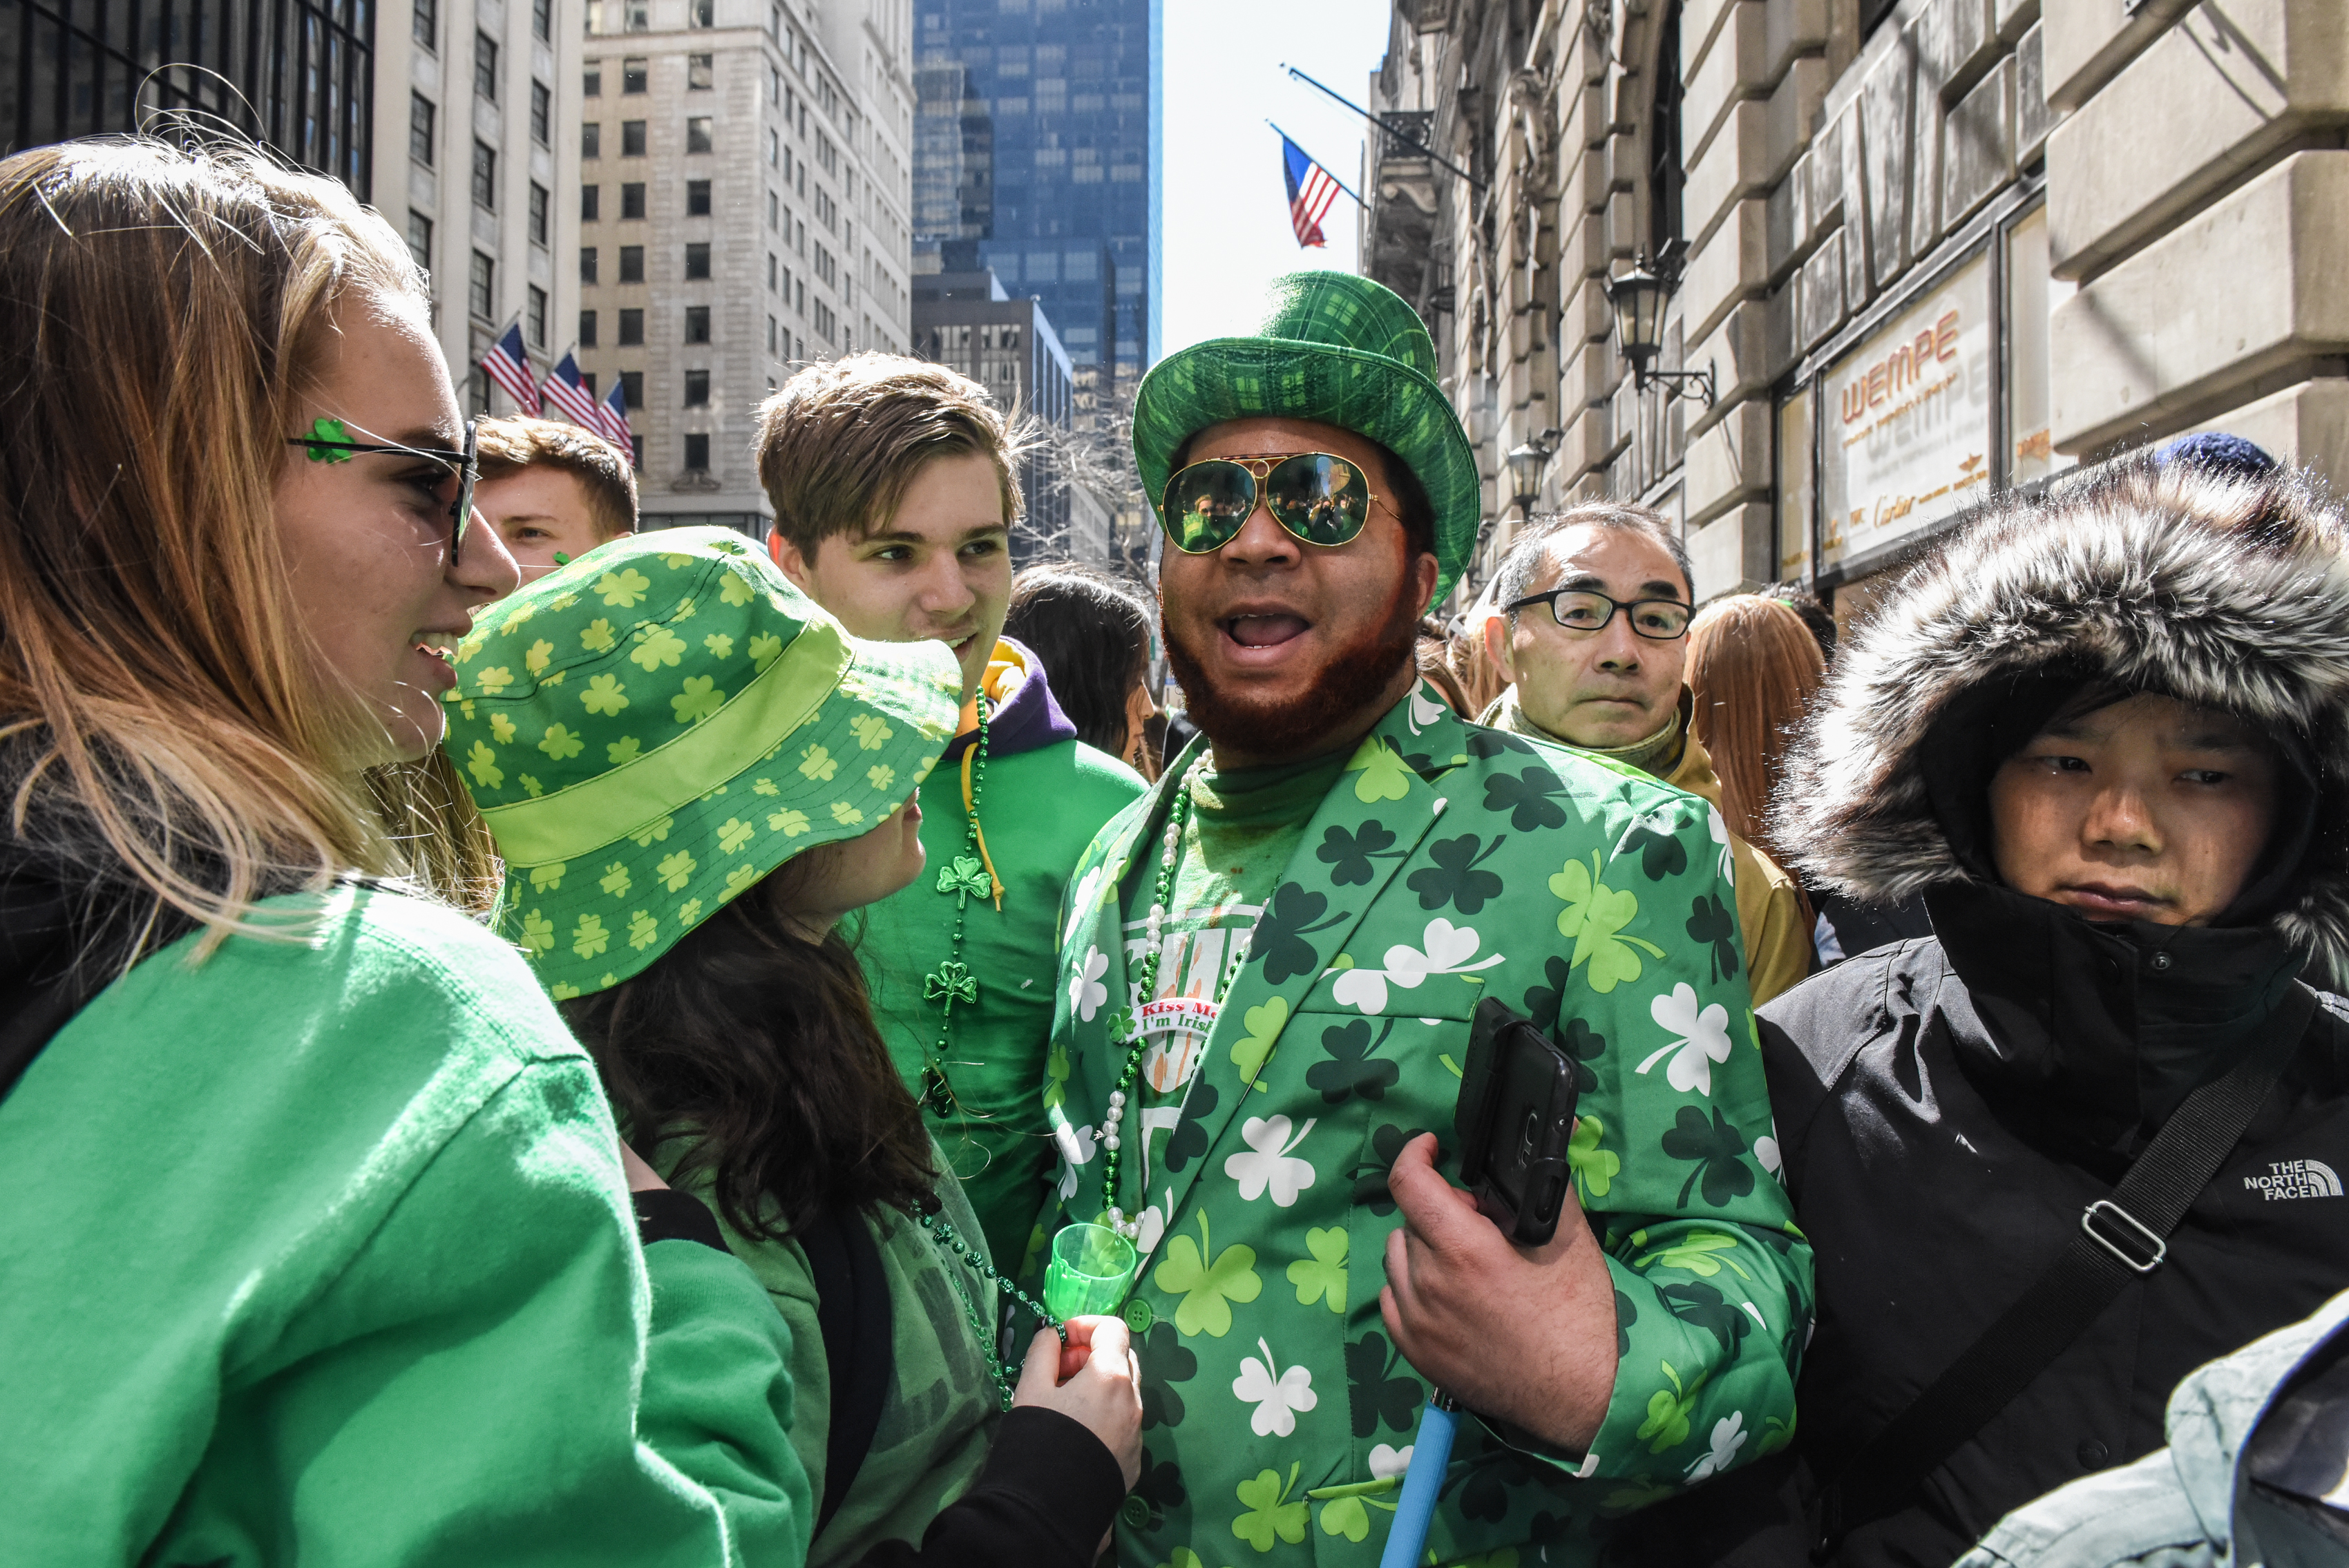 People participate on the sidelines of the annual St. Patrick's Day parade along 5th Ave. on March 17, 2018 in New York City. New York's Saint Patrick's Day parade is the largest in the world. (Photo by Stephanie Keith/Getty Images)